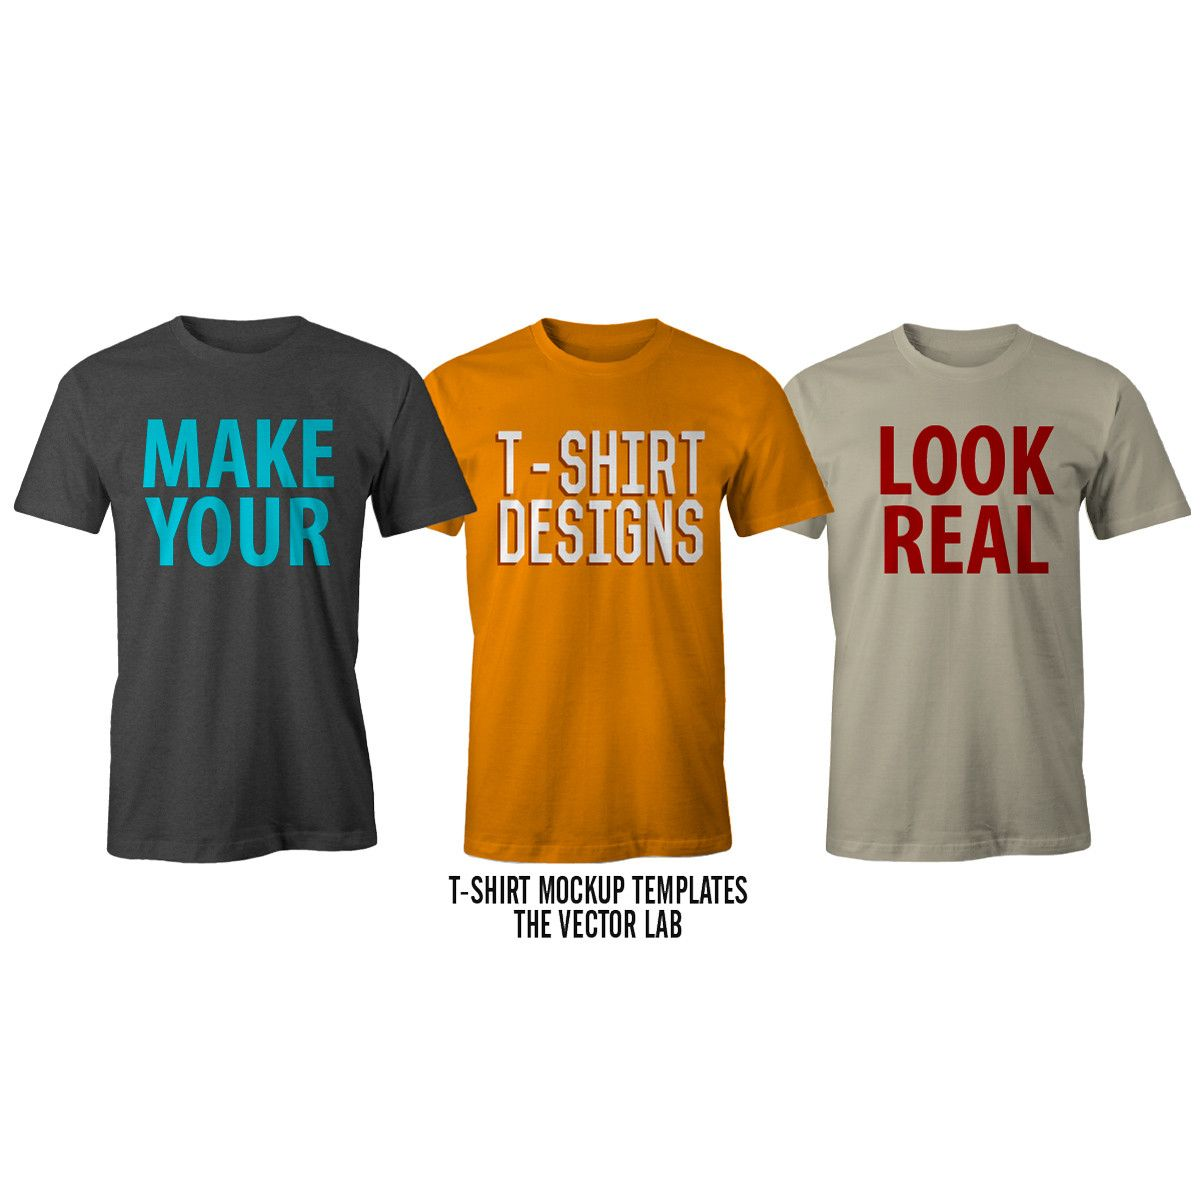 Corel draw vs photoshop for t shirt design - Men S T Shirt Mockup Templates 01